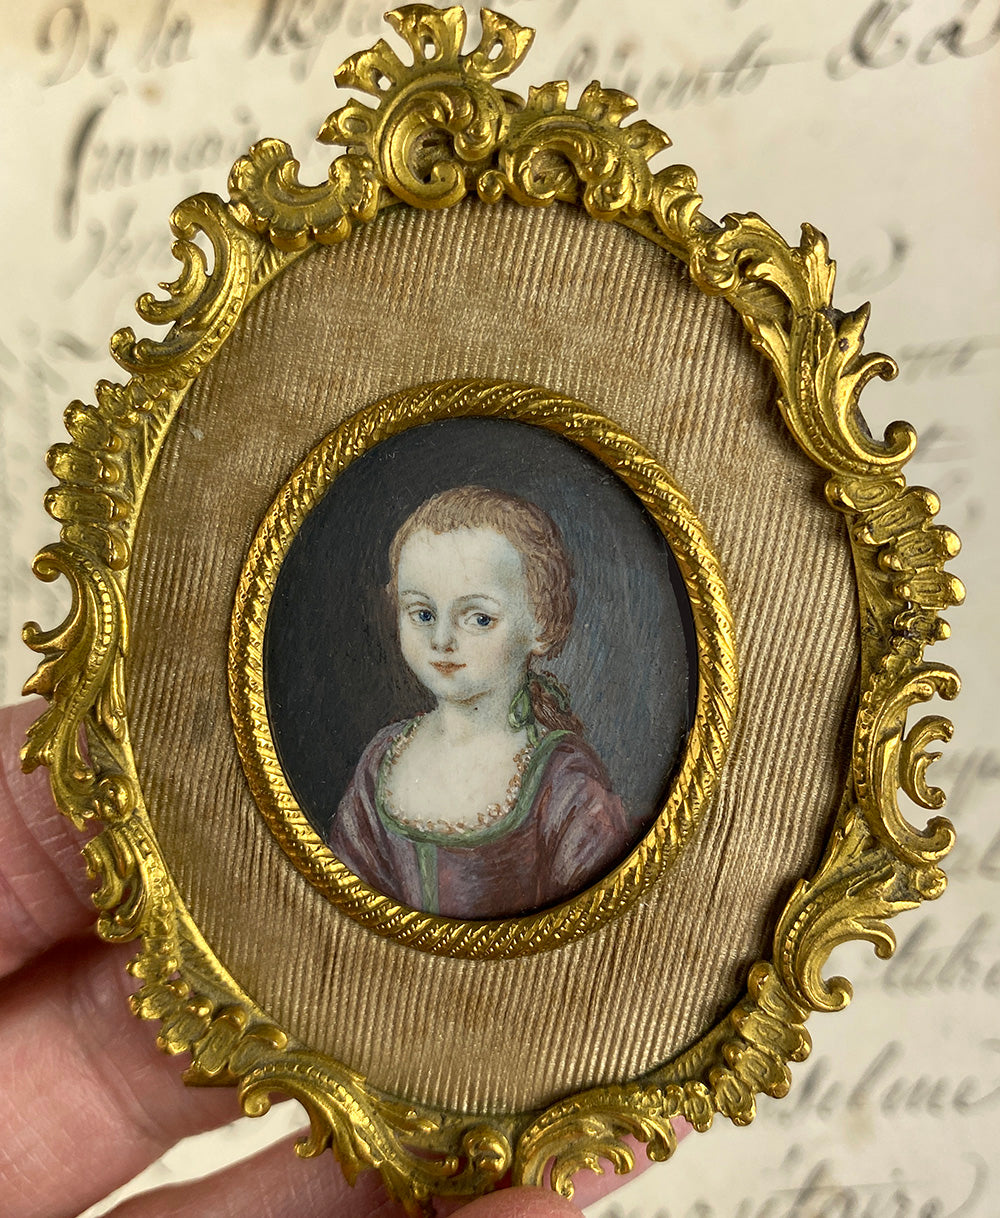 RARE Antique French Portrait Miniature of a Child, a Girl, c.late 1700s, Elegant French Easel Frame